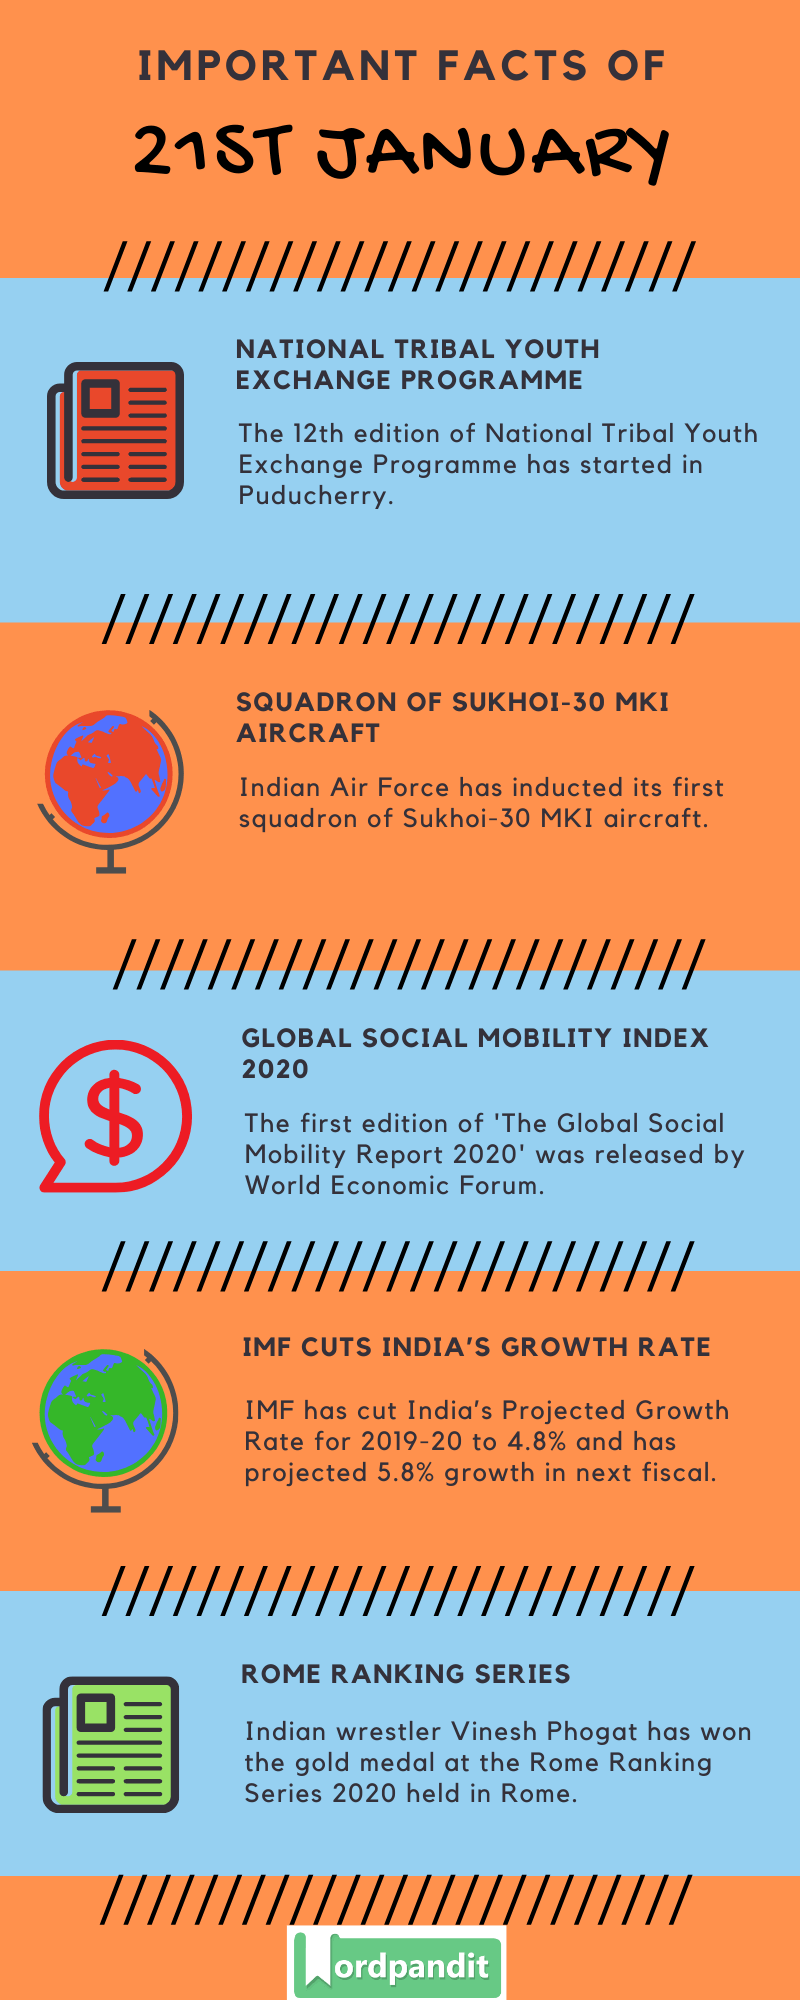 Daily Current Affairs 21 January 2020 Current Affairs Quiz 21 January 2020 Current Affairs Infographic